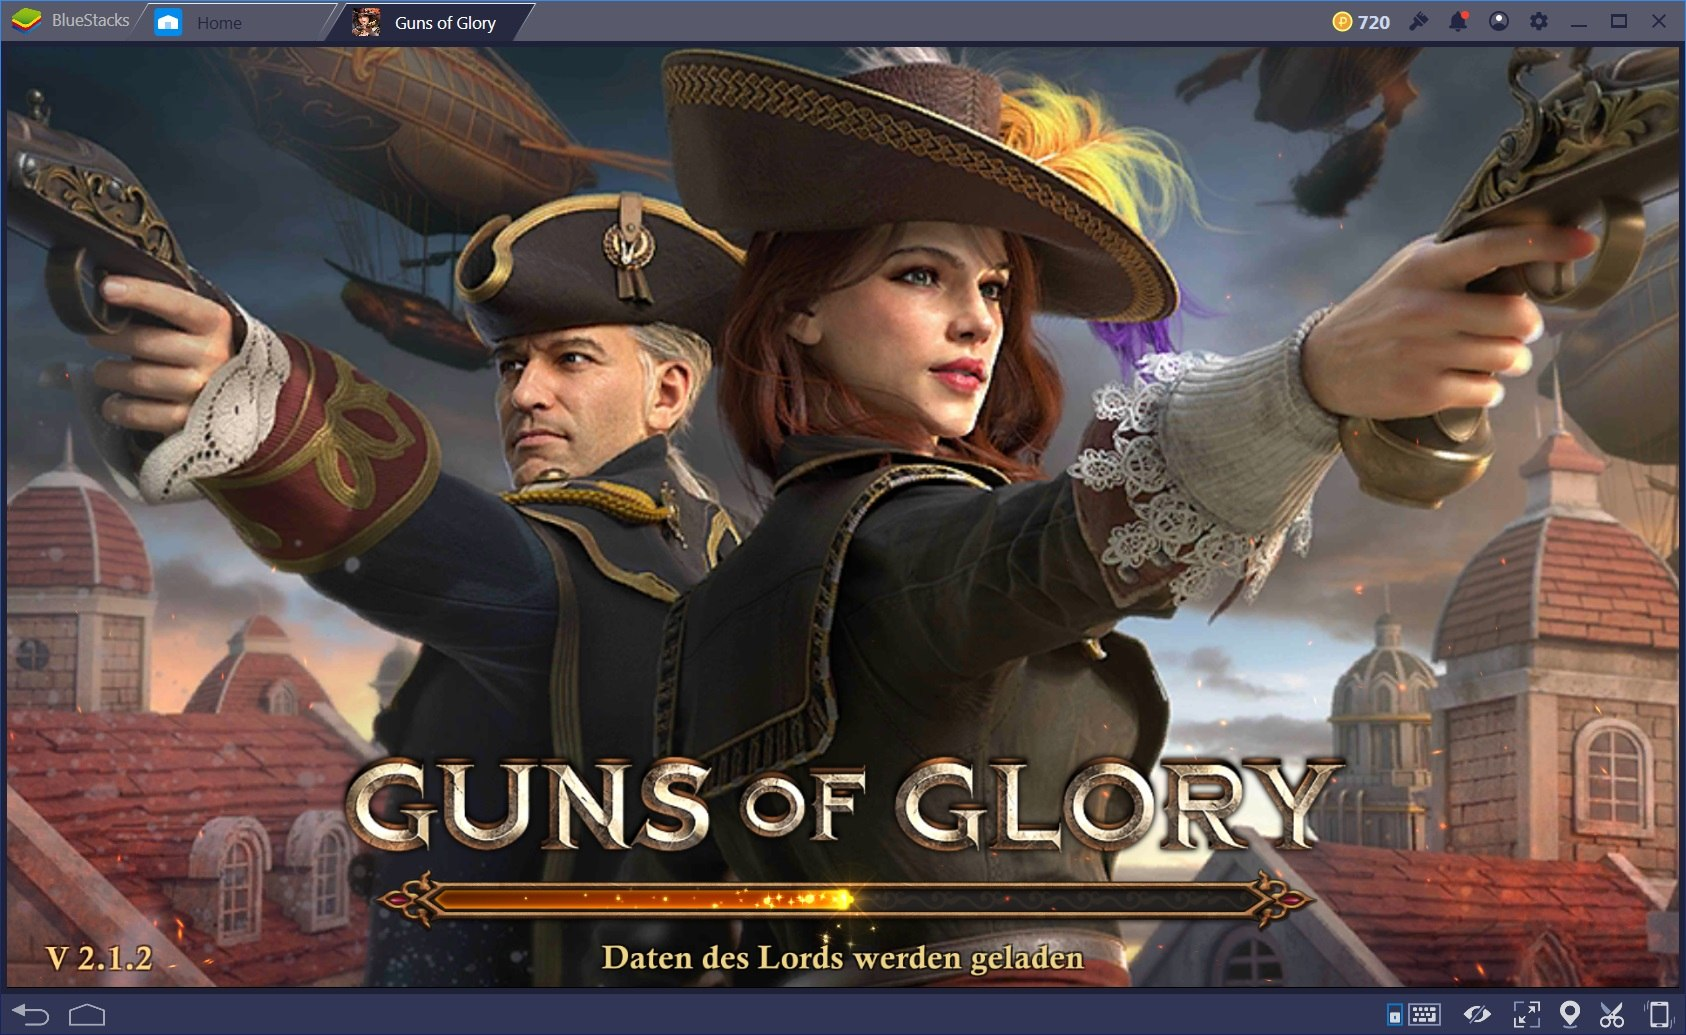 Boosts durch das Wächtergebäude in Guns of Glory